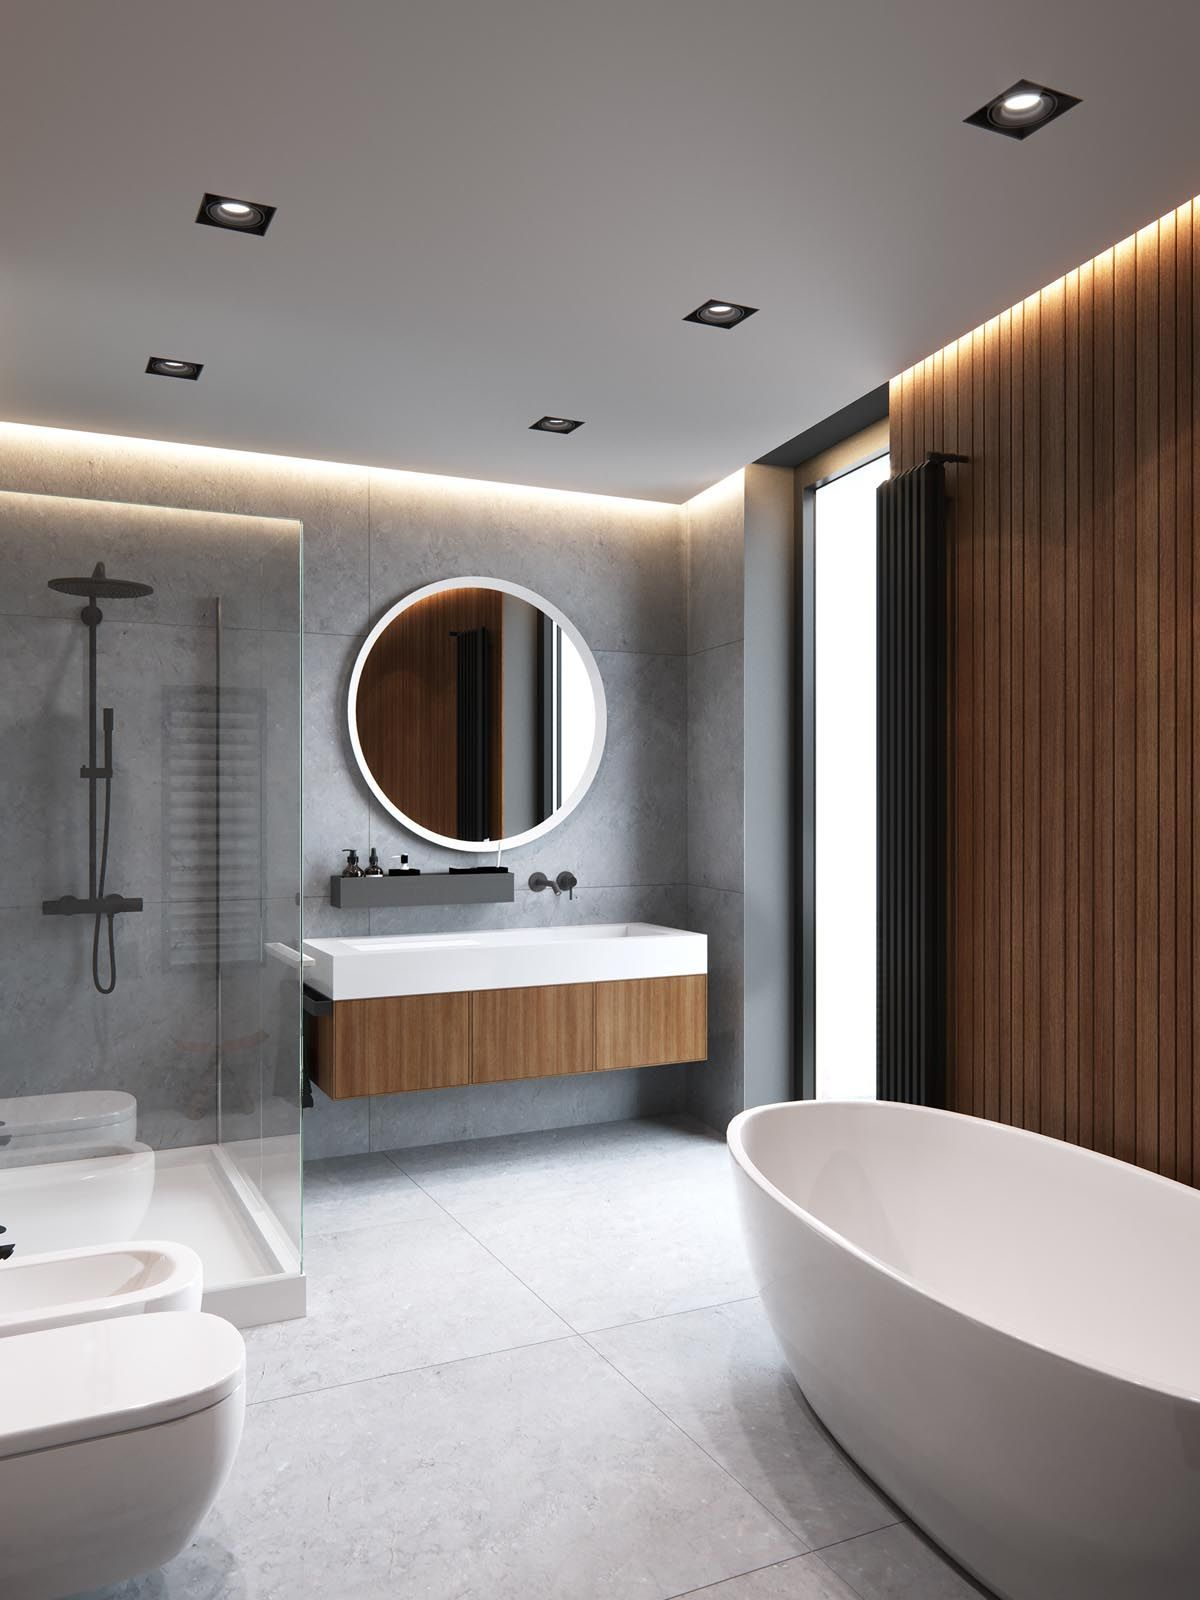 Sleek Modern Dark Bathroom With Glossy Tiled Walls: A Sleek Modern Home For A Stylish Young Family